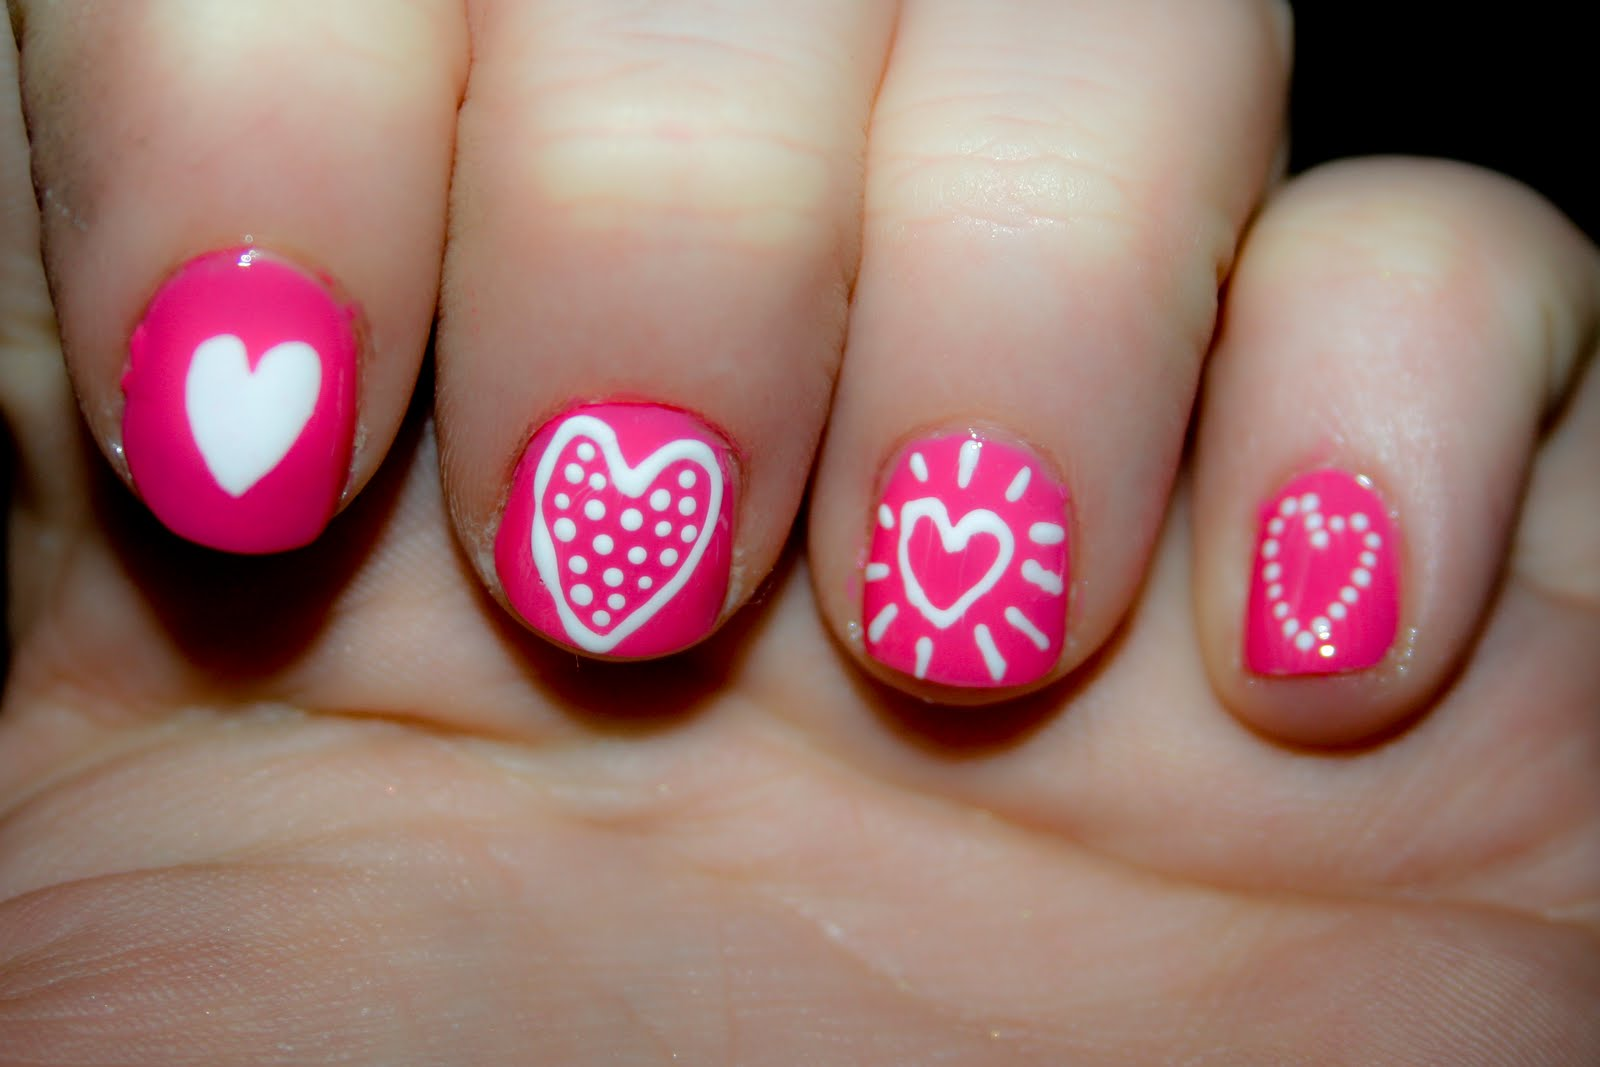 Something Beautiful Blog: Uñas: Especial uñas para San Valentin ...